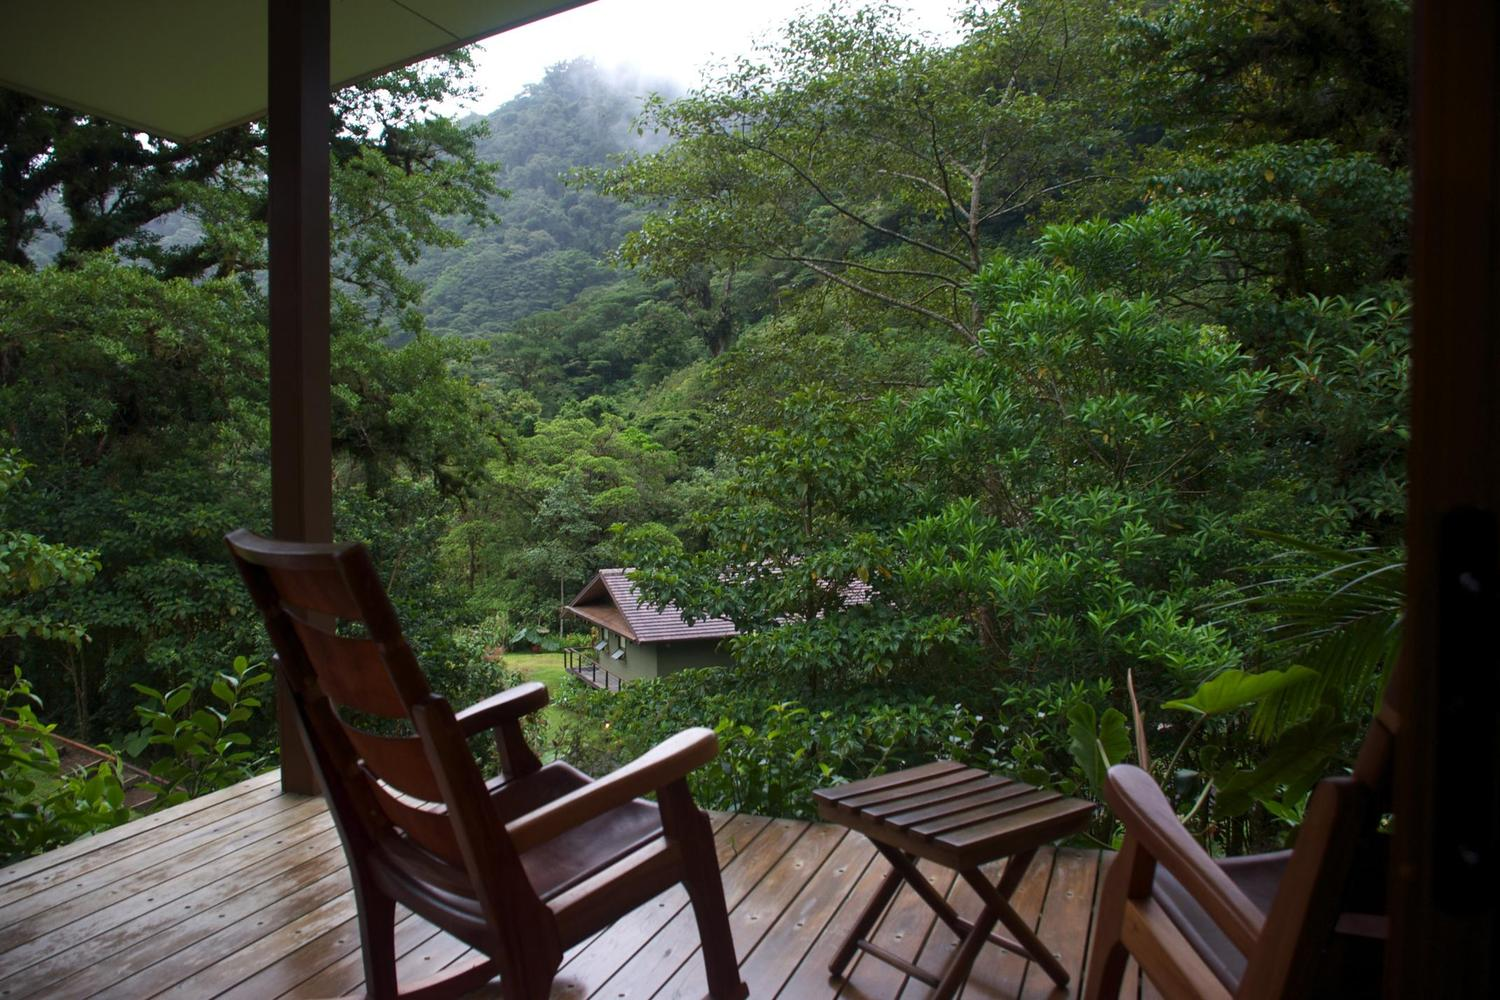 Looking out from El Silencio Lodge in the Bajos del Toro cloud forest area